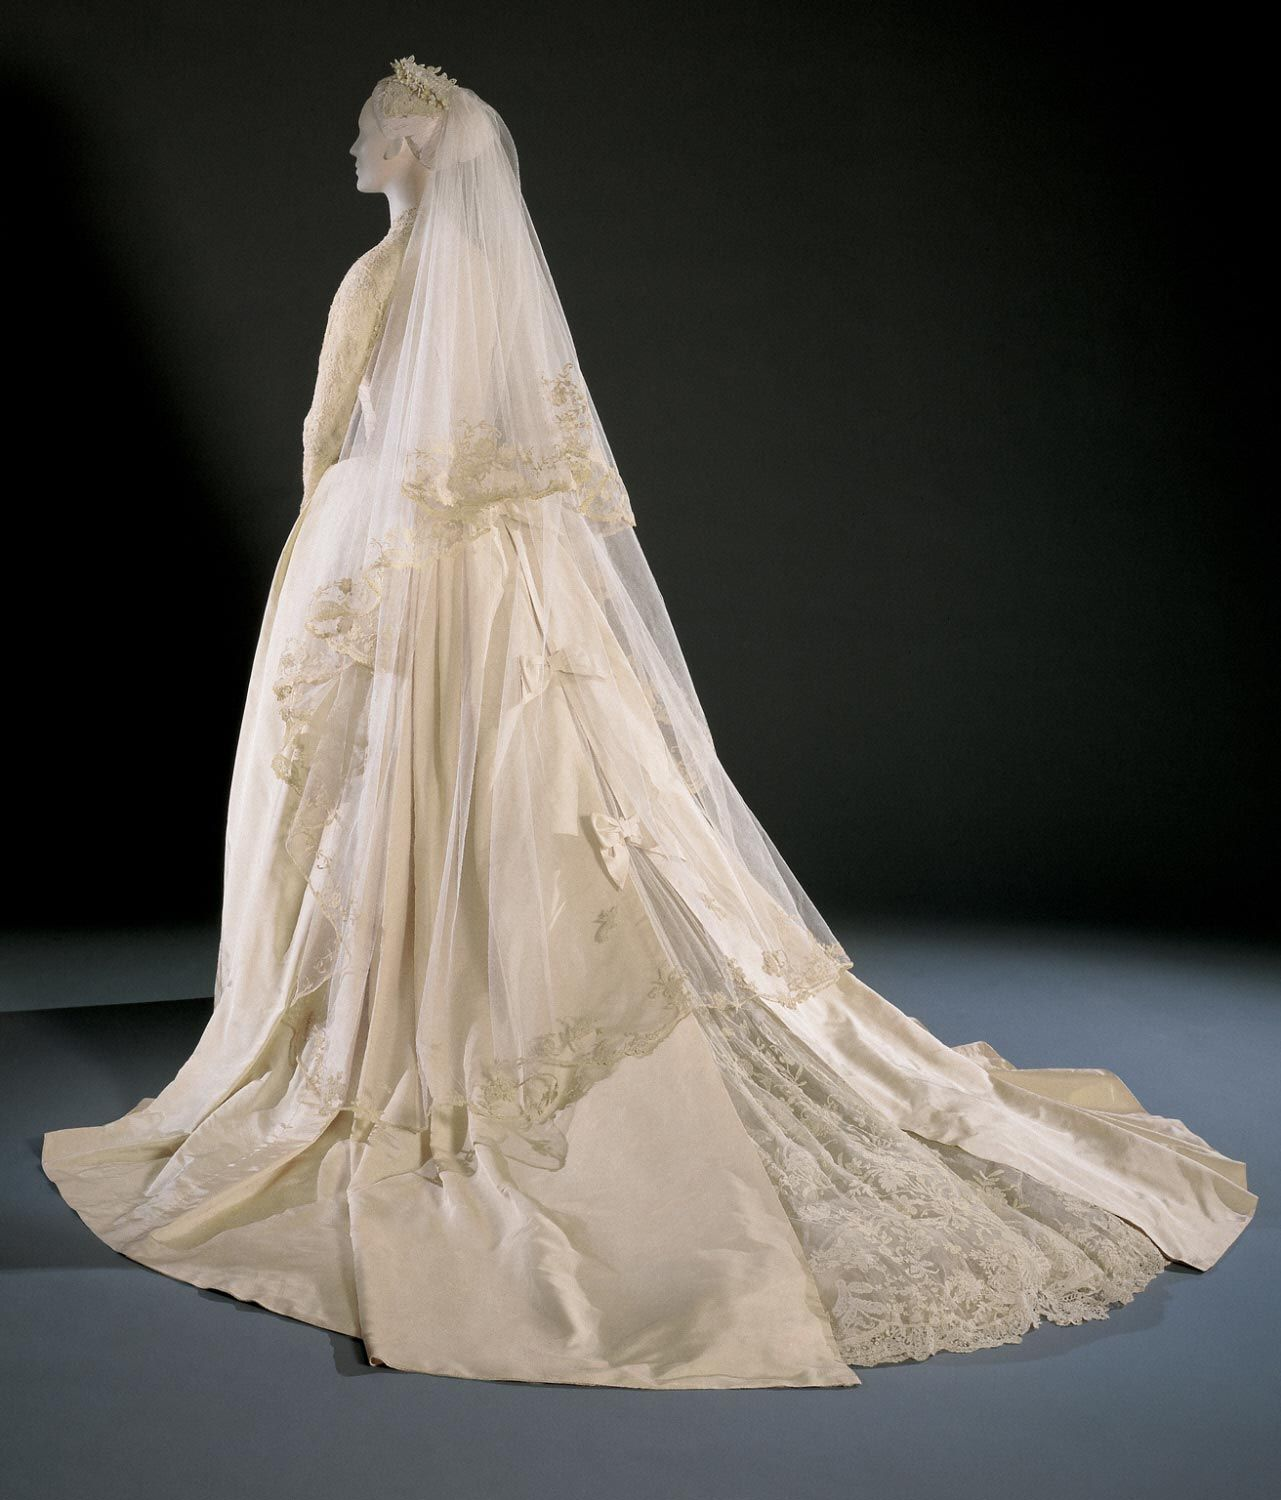 Philadelphia Museum Of Art Collections Object Grace Kelly's Wedding Dress And Accessories: Wedding Dress Helen Rose At Reisefeber.org